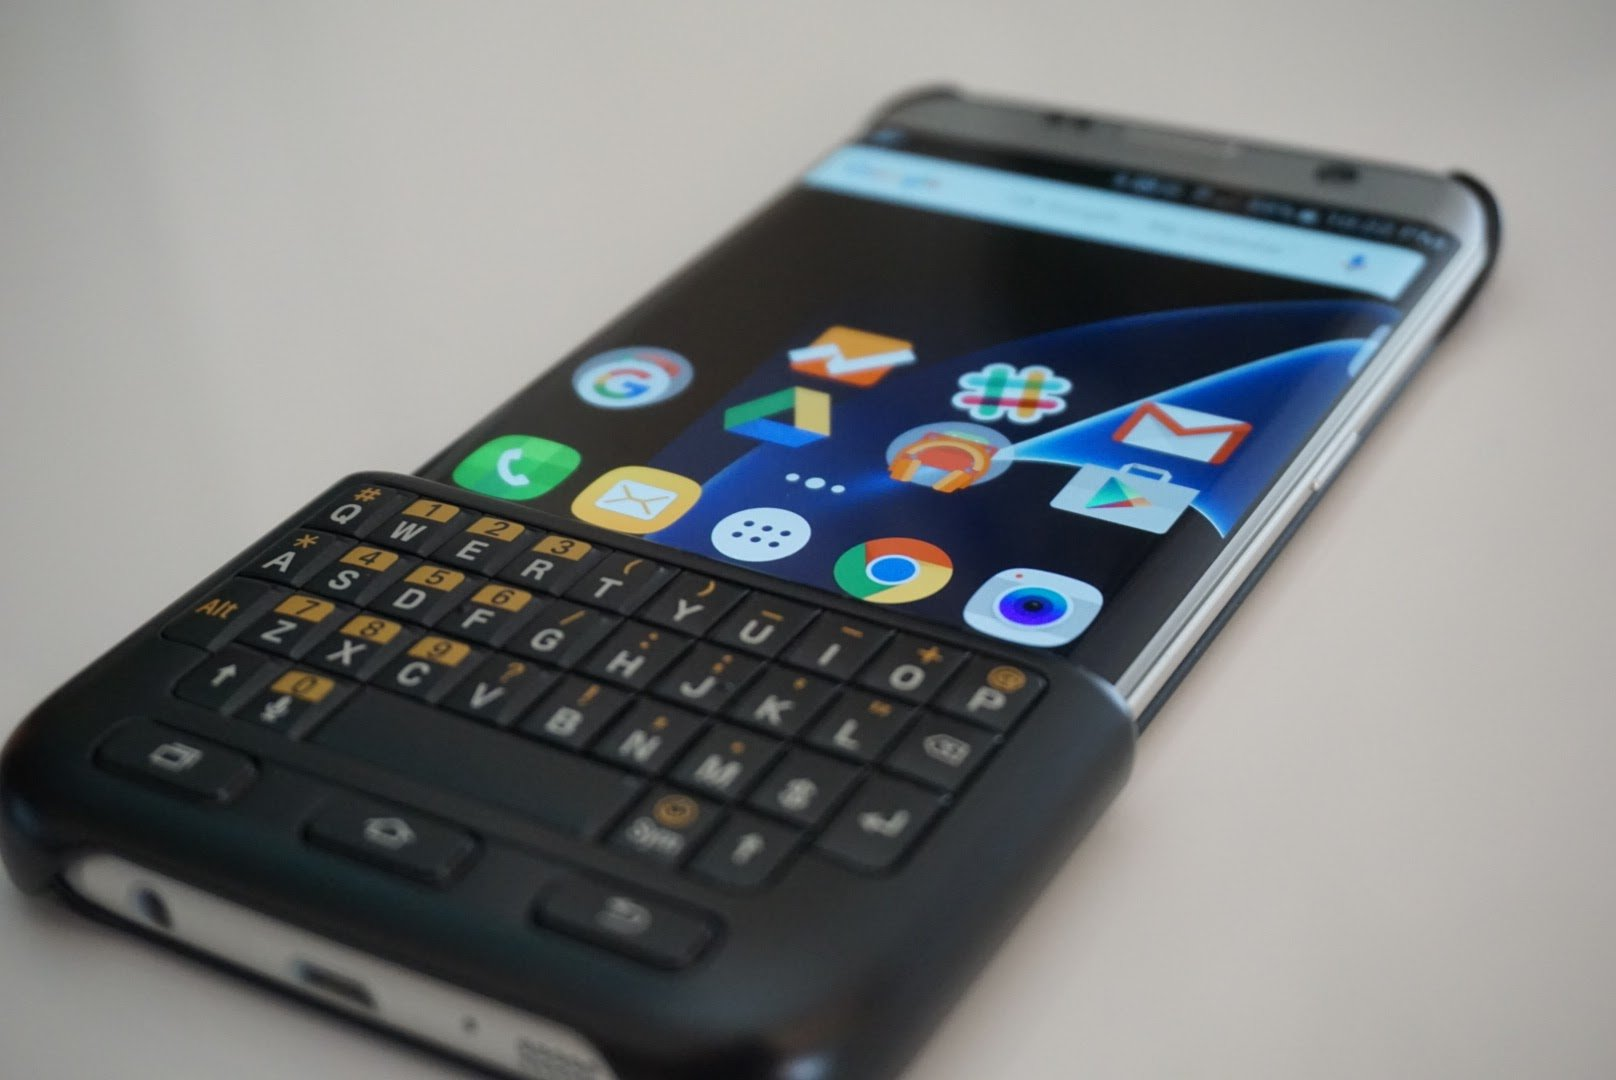 Blackberry revived on the Samsung Galaxy S7 edge: Keyboard